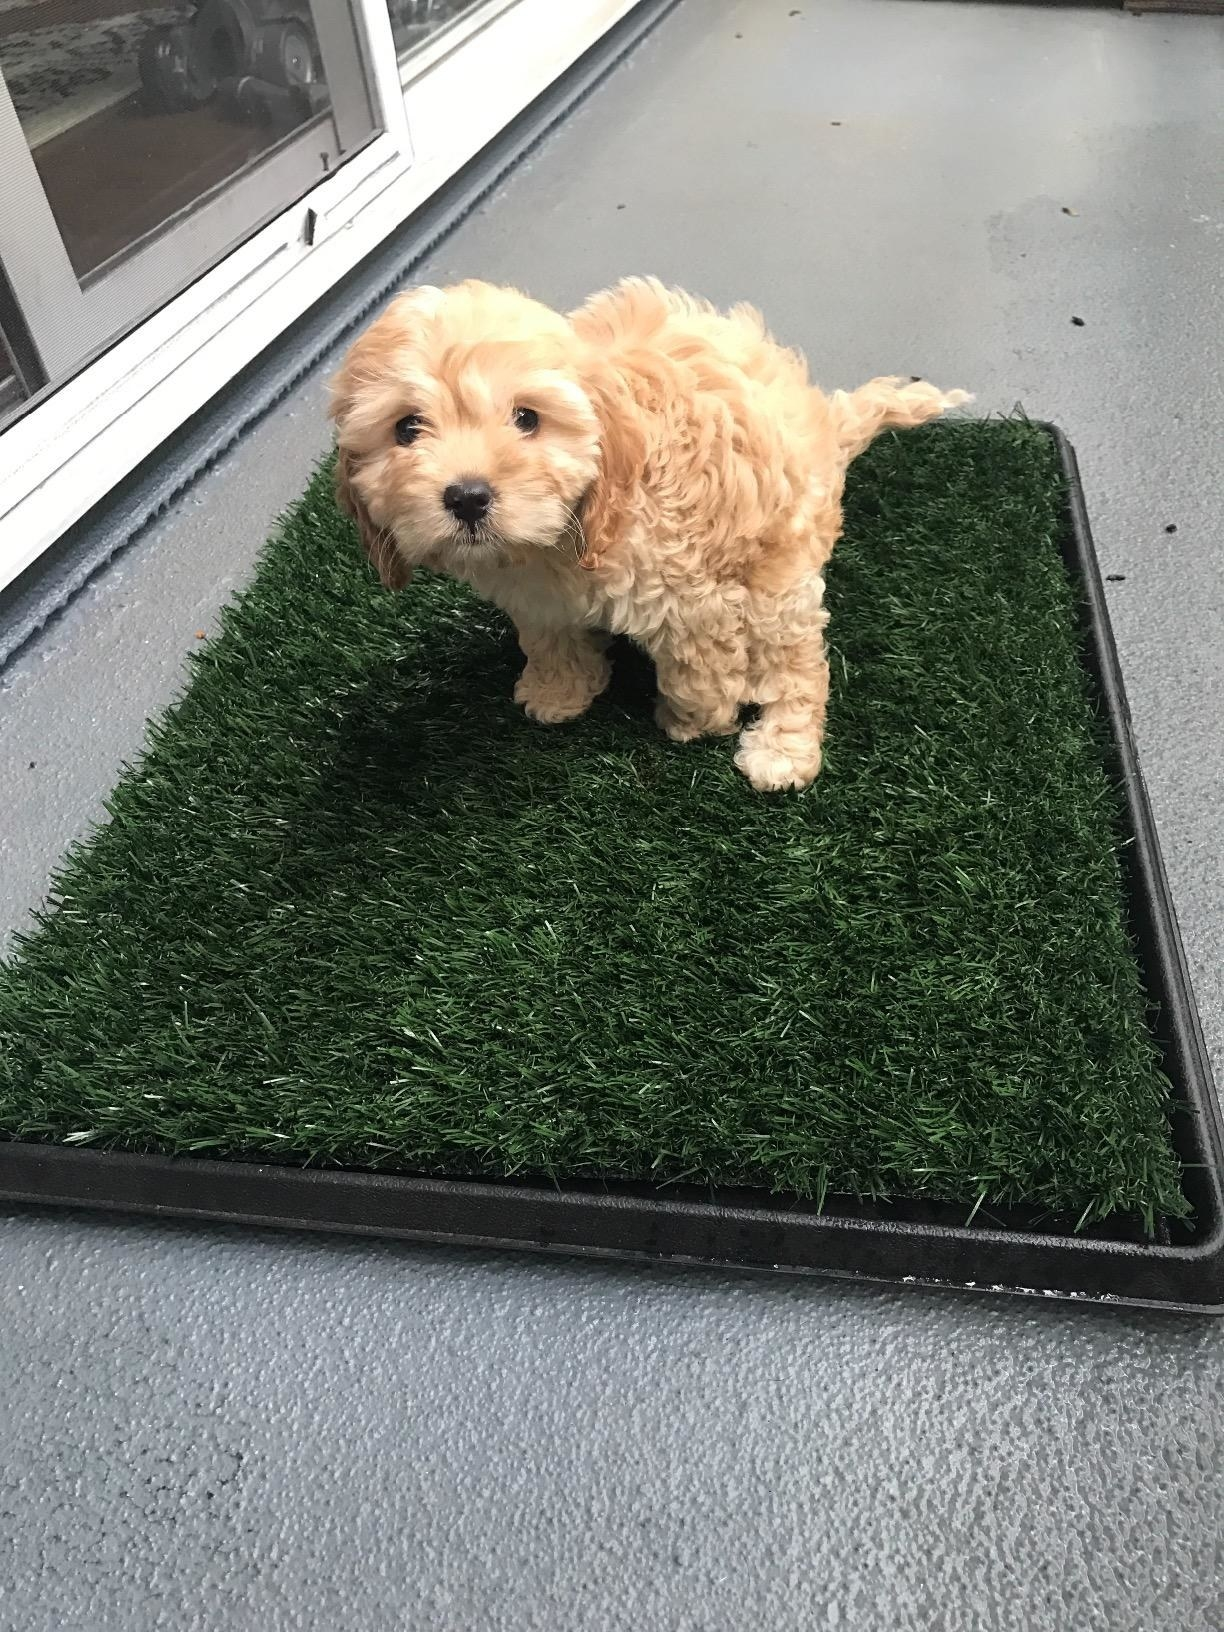 A puppy using the pad, which is square and covered in fake grass